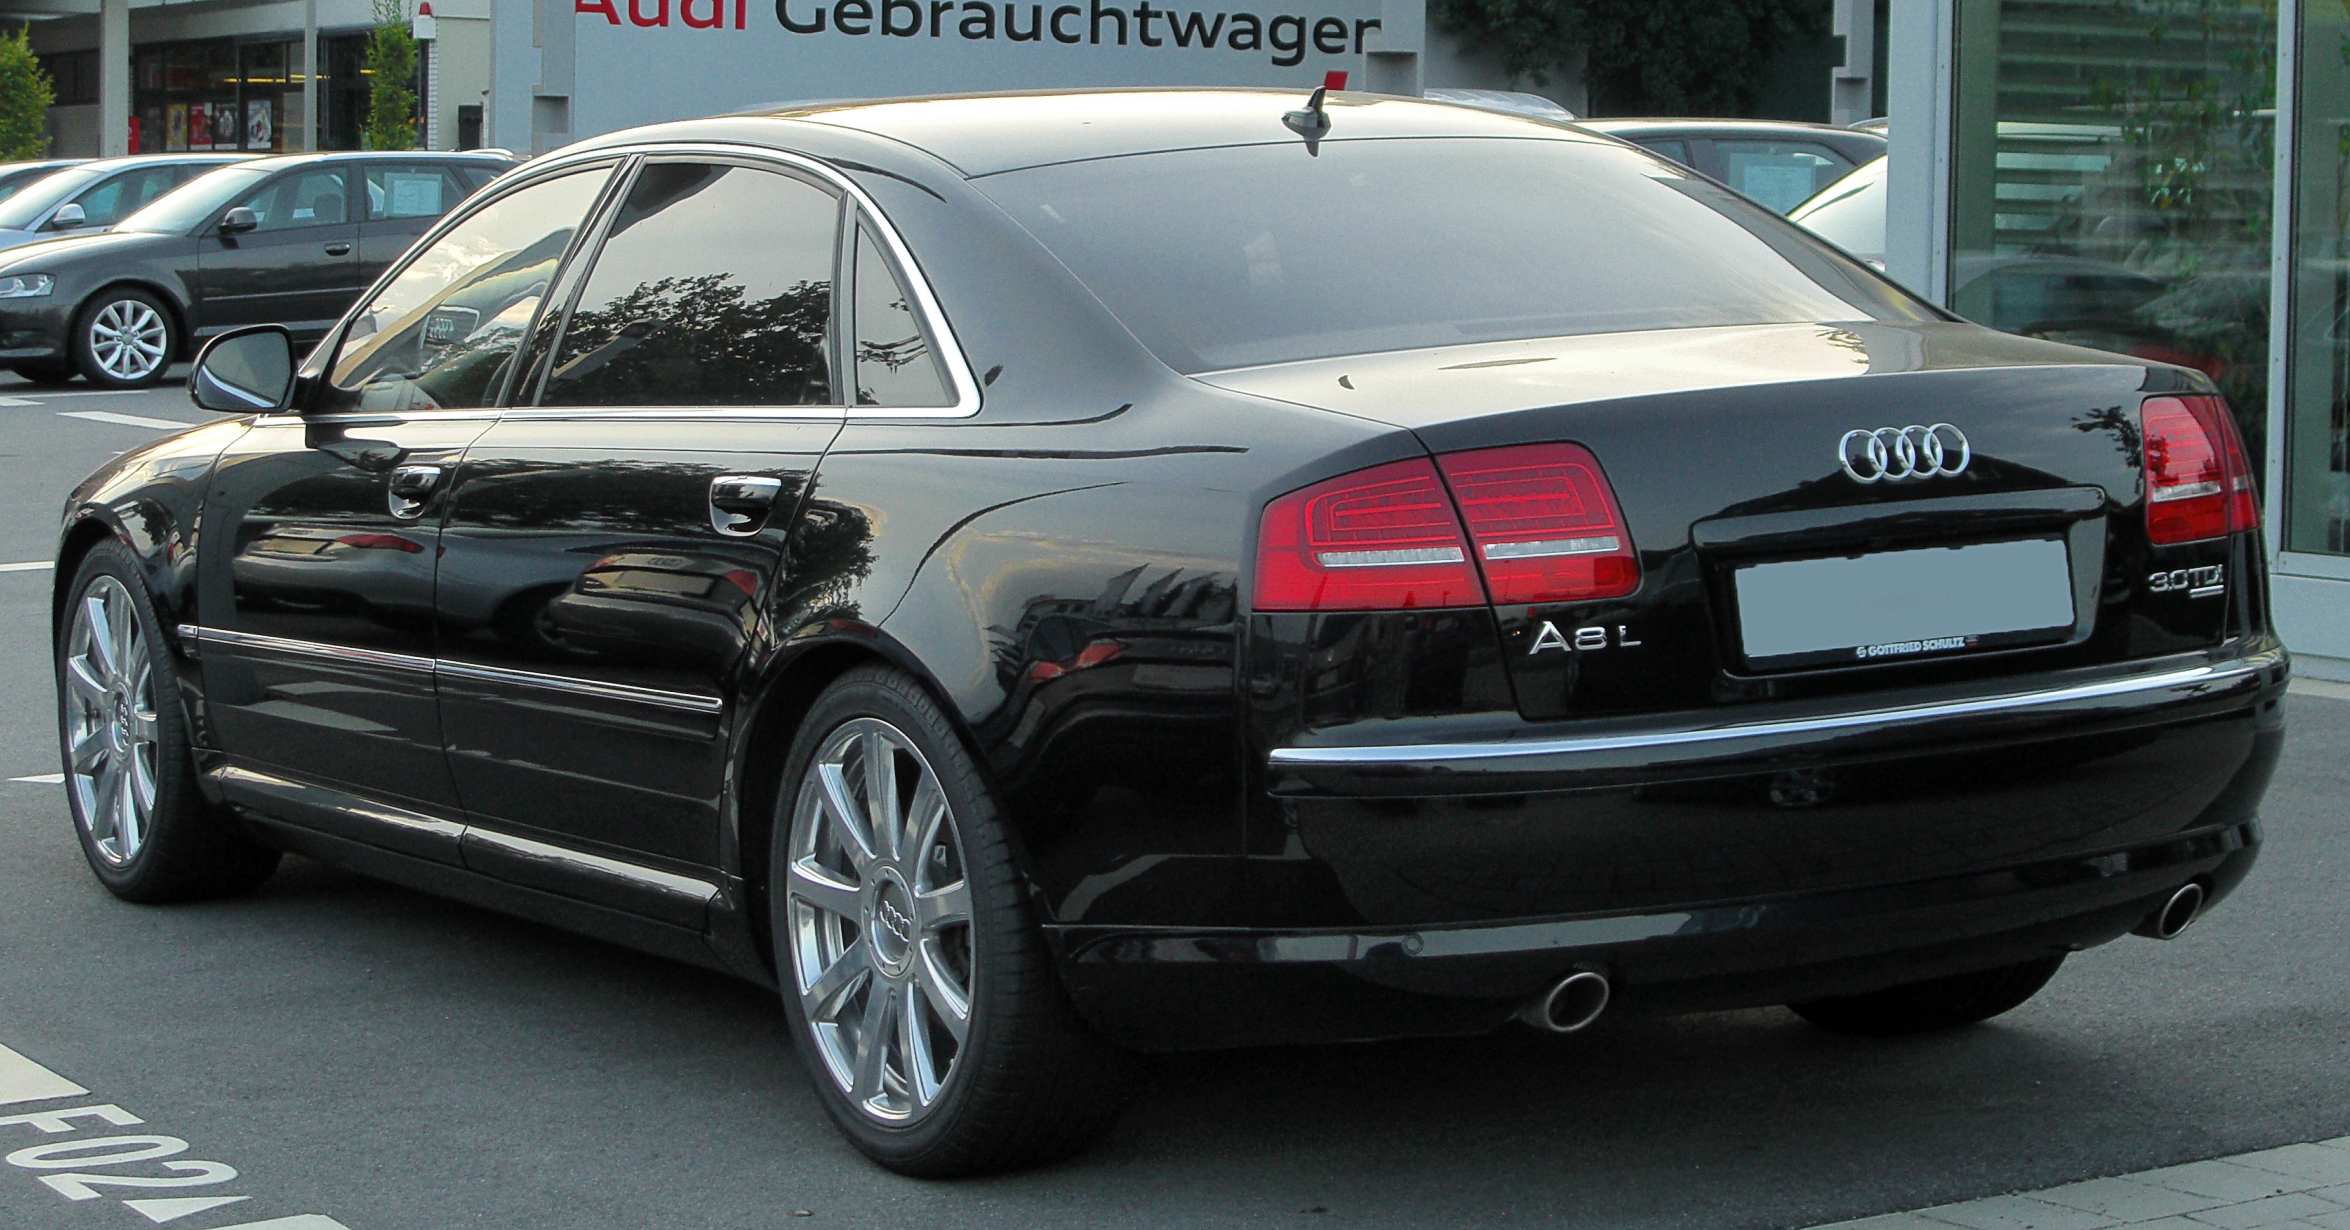 file audi a8 l 3 0 tdi quattro d3 ii facelift rear. Black Bedroom Furniture Sets. Home Design Ideas